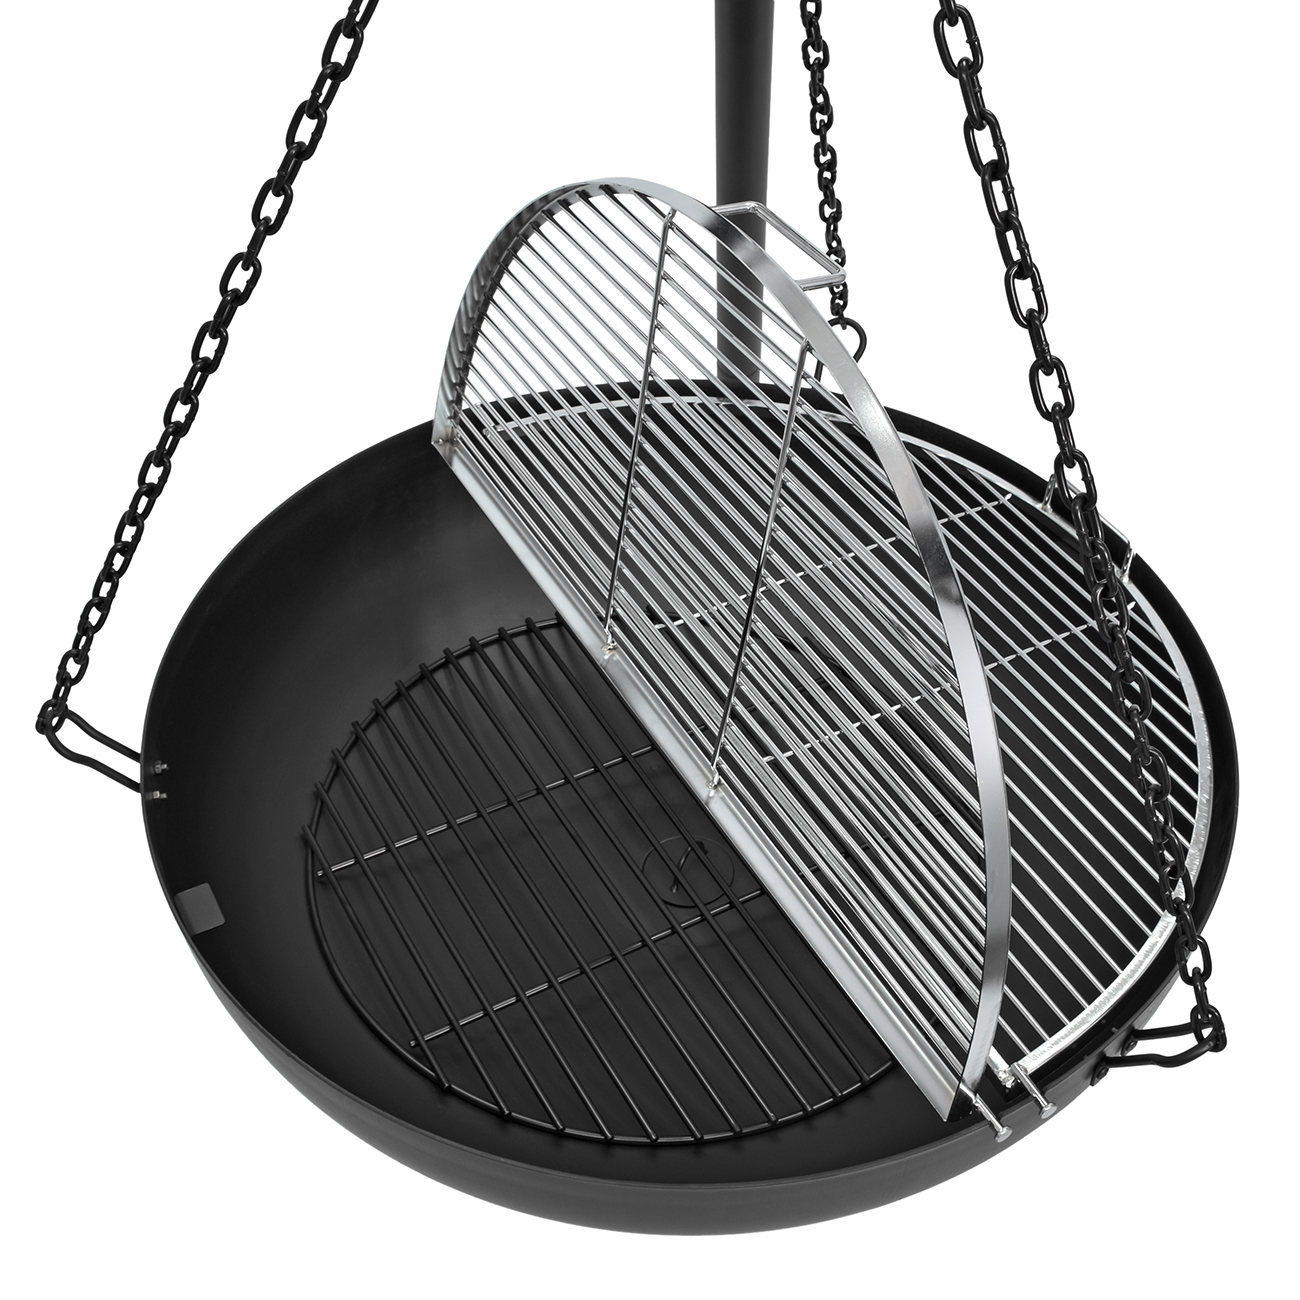 Hinged Cooking Grates